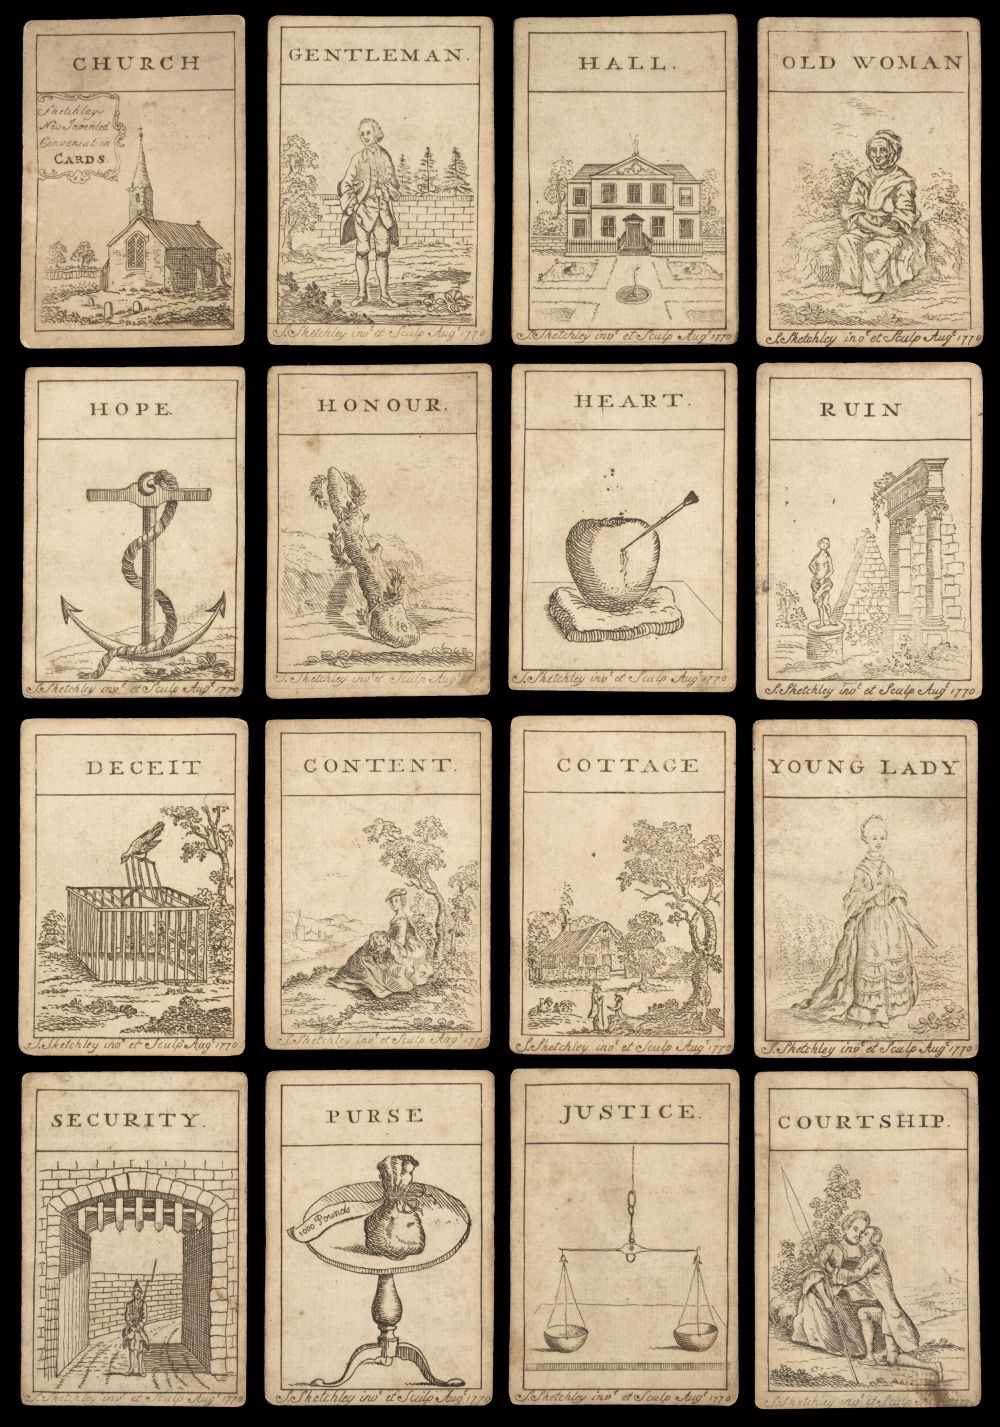 Lot 467 - Sketchley (James, publisher). New Invented Conversation Cards, 1770